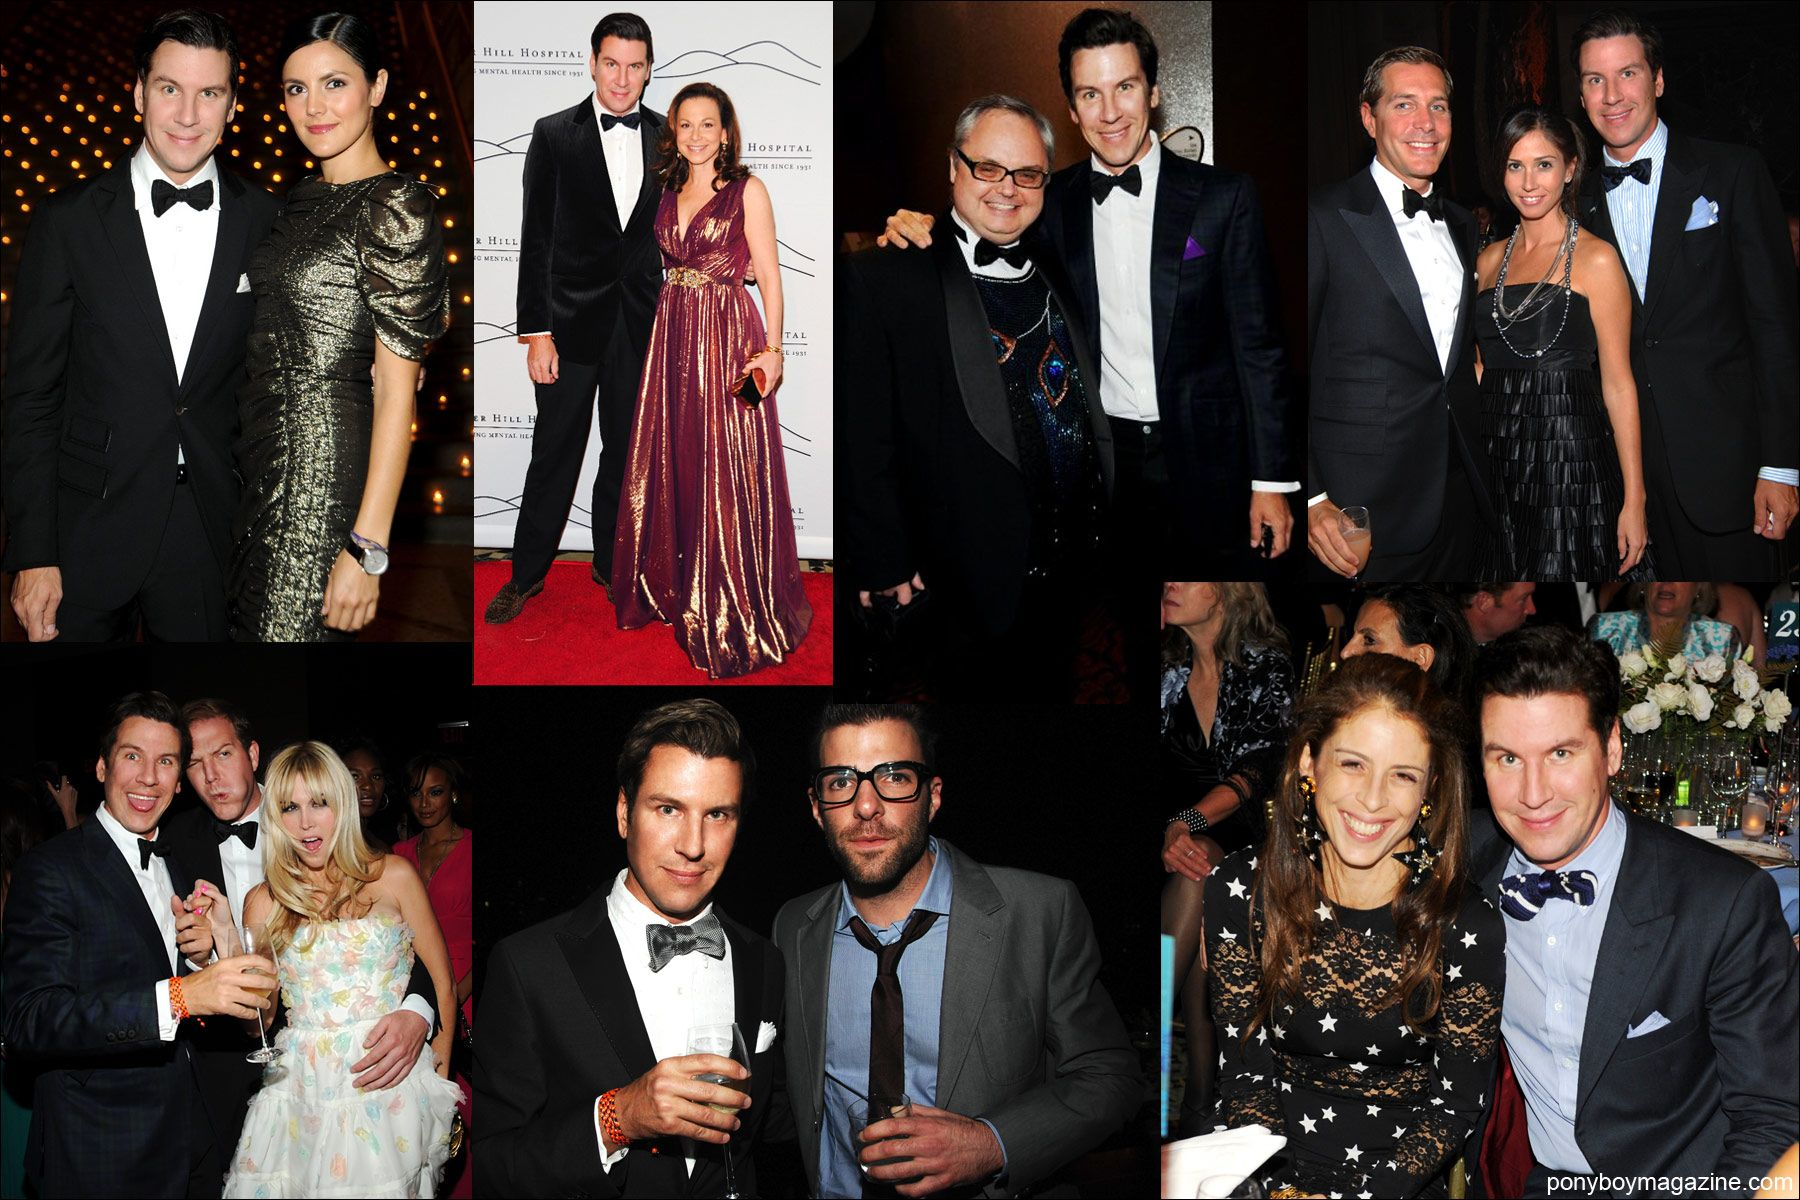 Photos of editor & socialite Peter Davis at black tie affairs in New York City. Ponyboy Magazine.